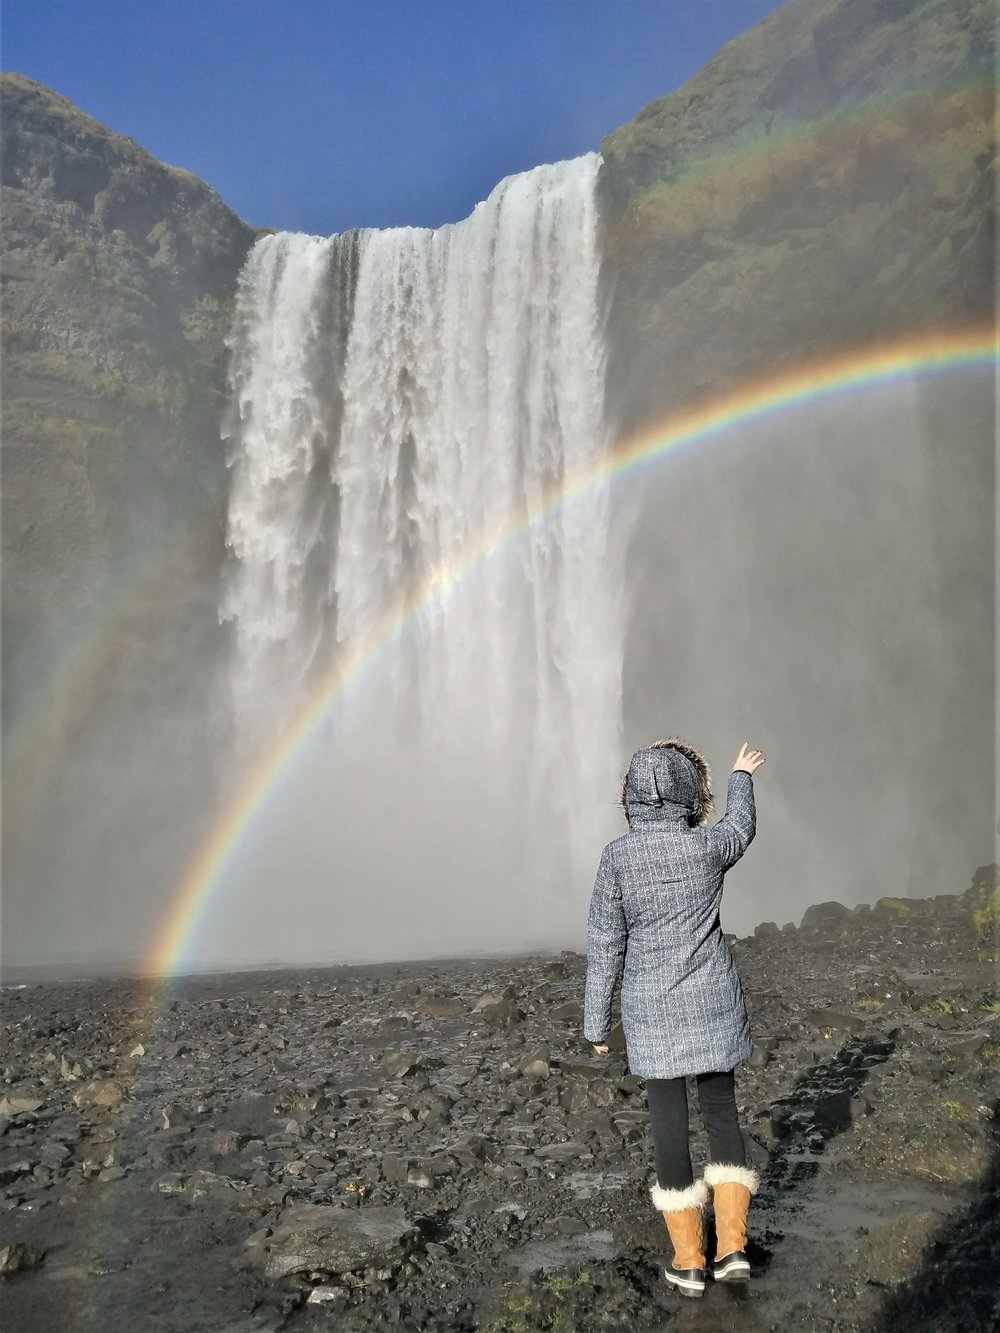 Skogafoss waterfall with a rainbow is one of the prettiest sites in Iceland. This Iceland waterfall is really easy to get to off the main road, and you can climb steps to the top. #iceland #waterfall #icelandtravel #icelandwaterfalls #skogafoss #skogafossiceland #skogafosswaterfalliceland #waterfalls #waterfallsaroundtheworld #traveldestinations #traveltips